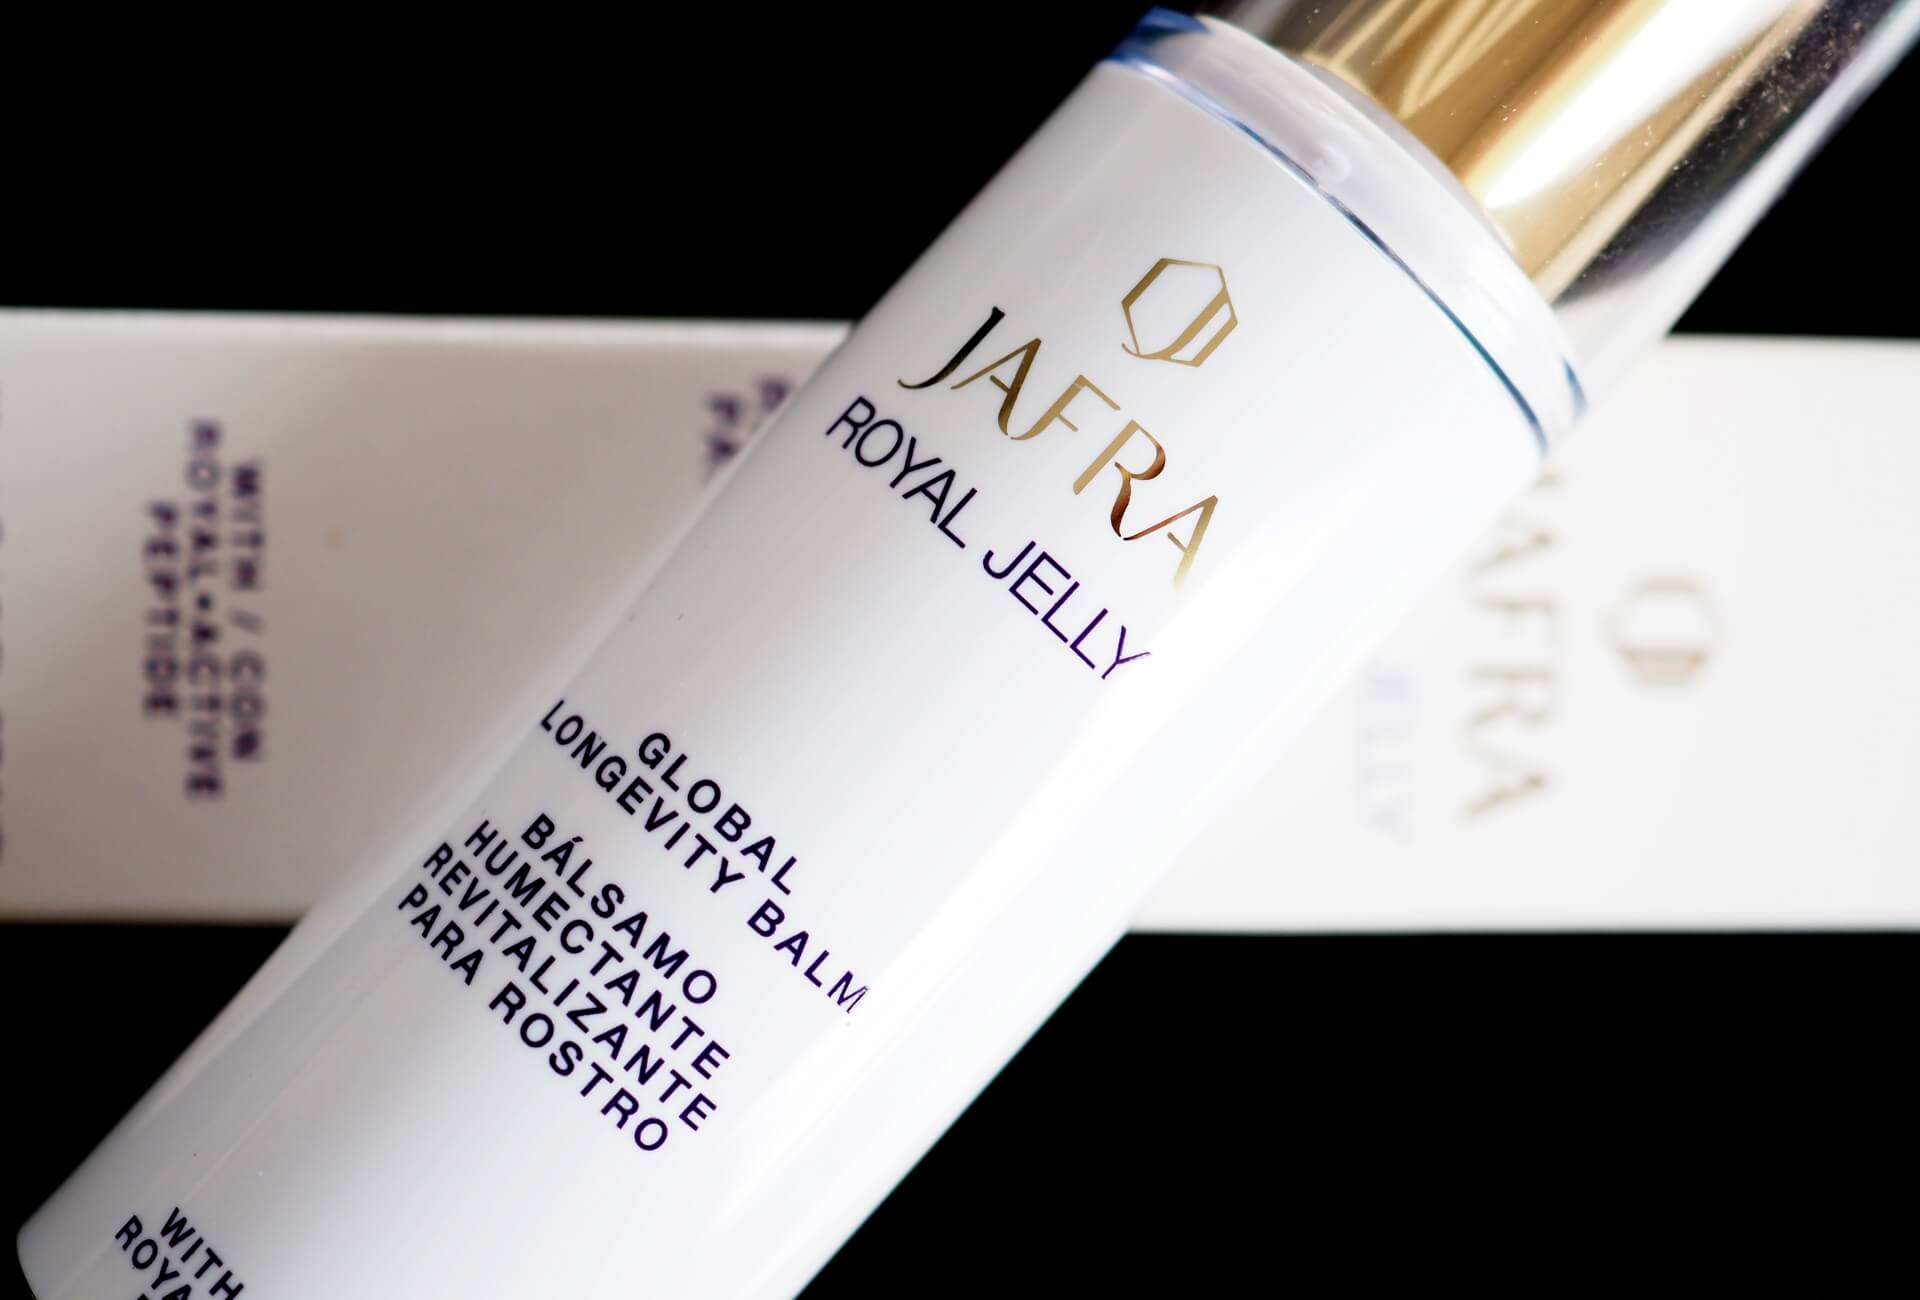 Jafra Royal Jelly Global Longevity Balm